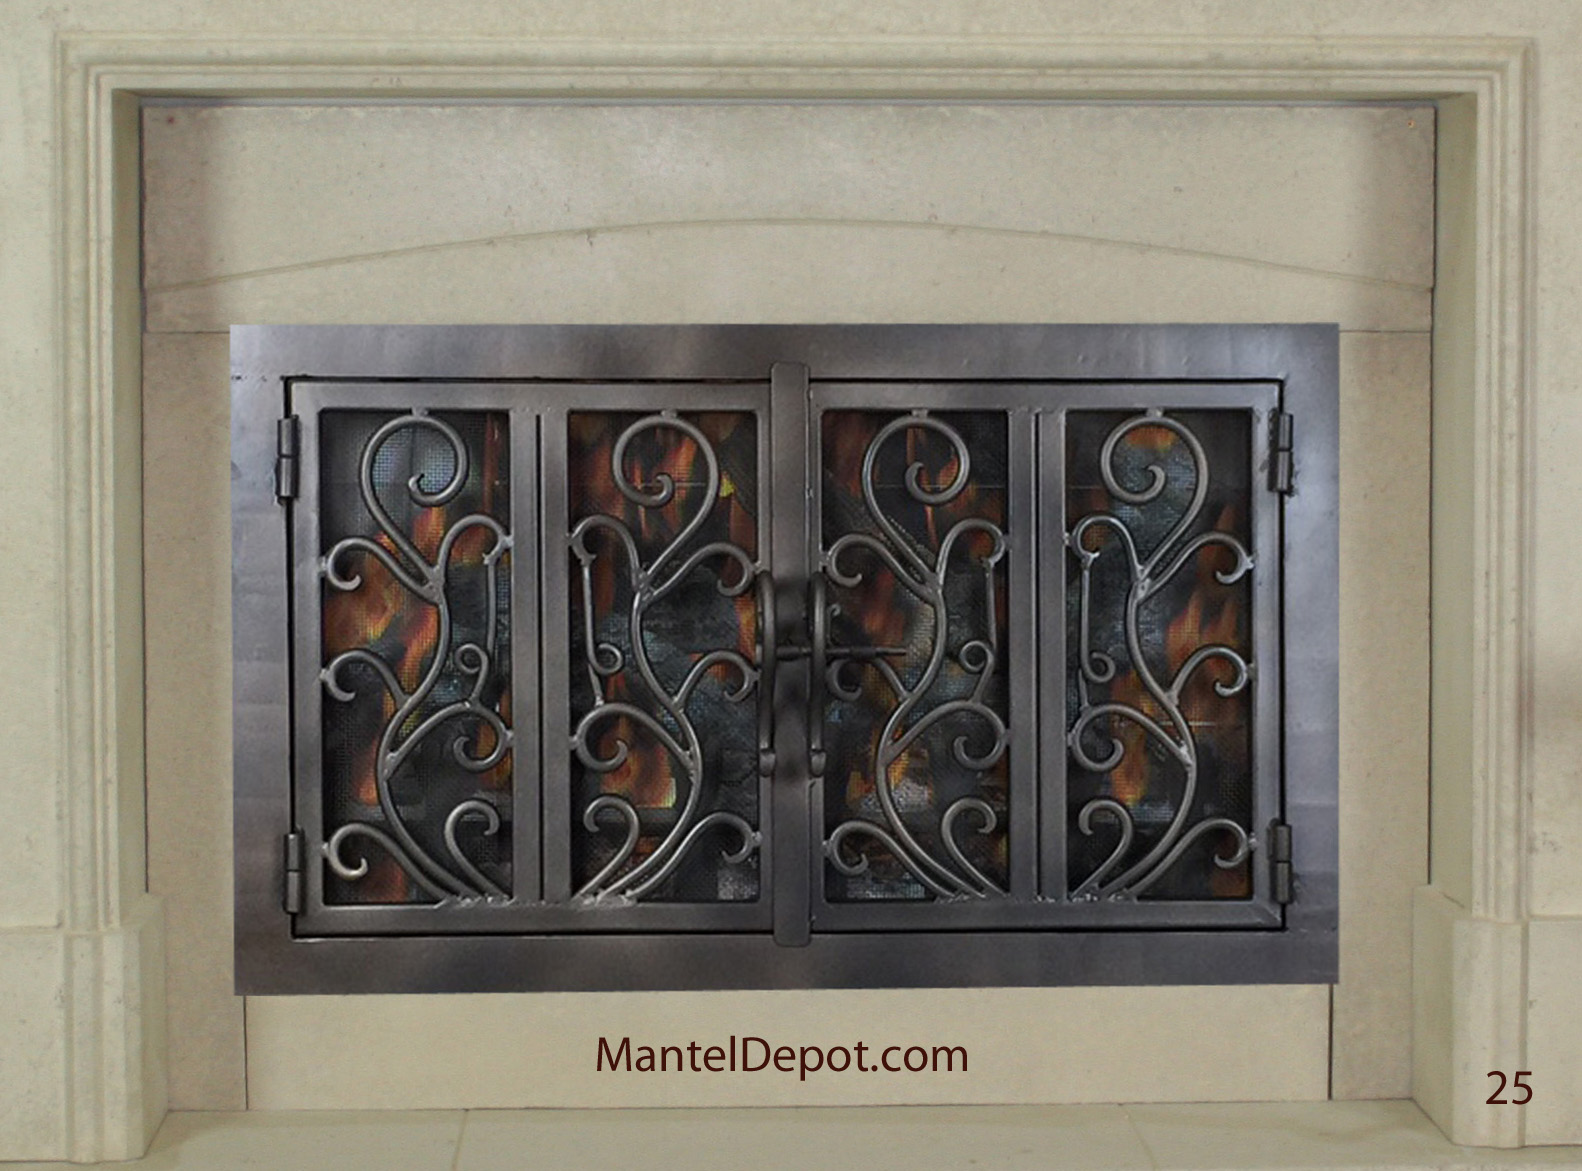 Hand forged Wrought iron fireplace doors FD025 from Mantel Depot in San Diego.